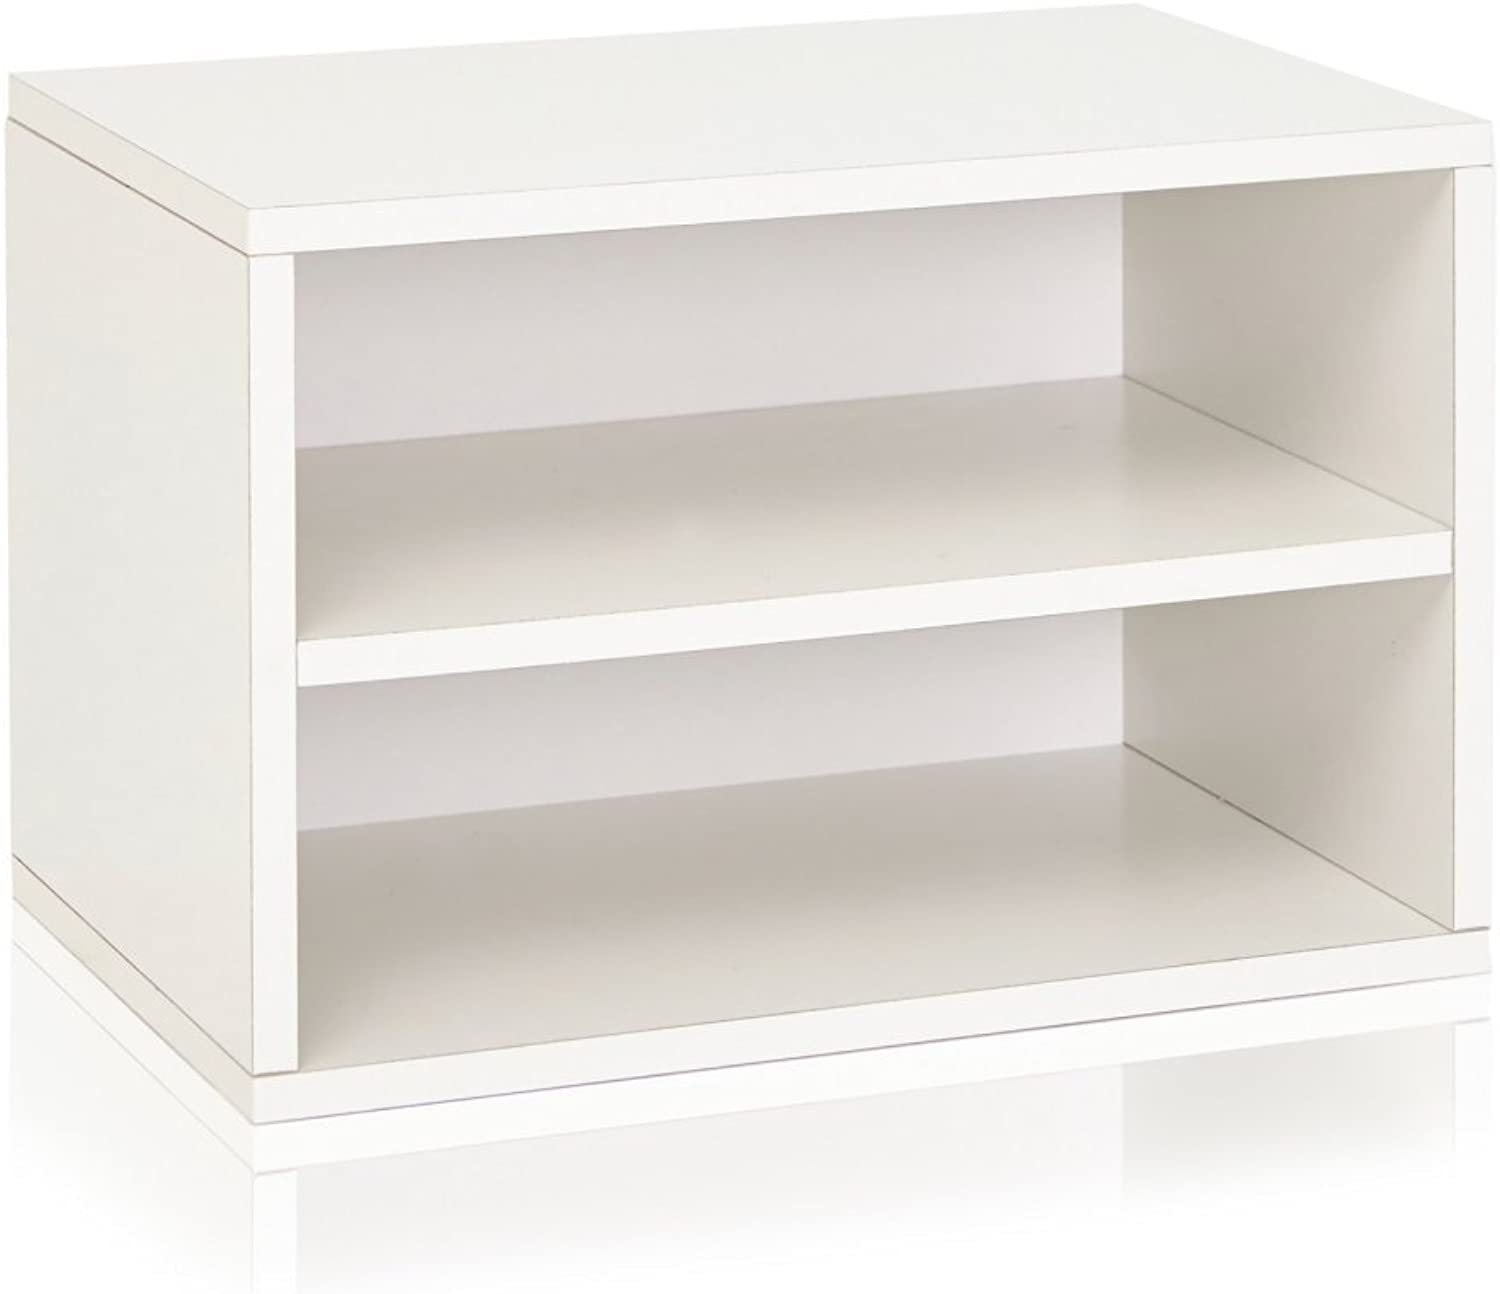 Way Basics Divider Blox Eco Friendly Storage Stackable Bookcase Shelving, White (Tool-Free Assembly and Uniquely Crafted from Sustainable Non Toxic zBoard paperboard)